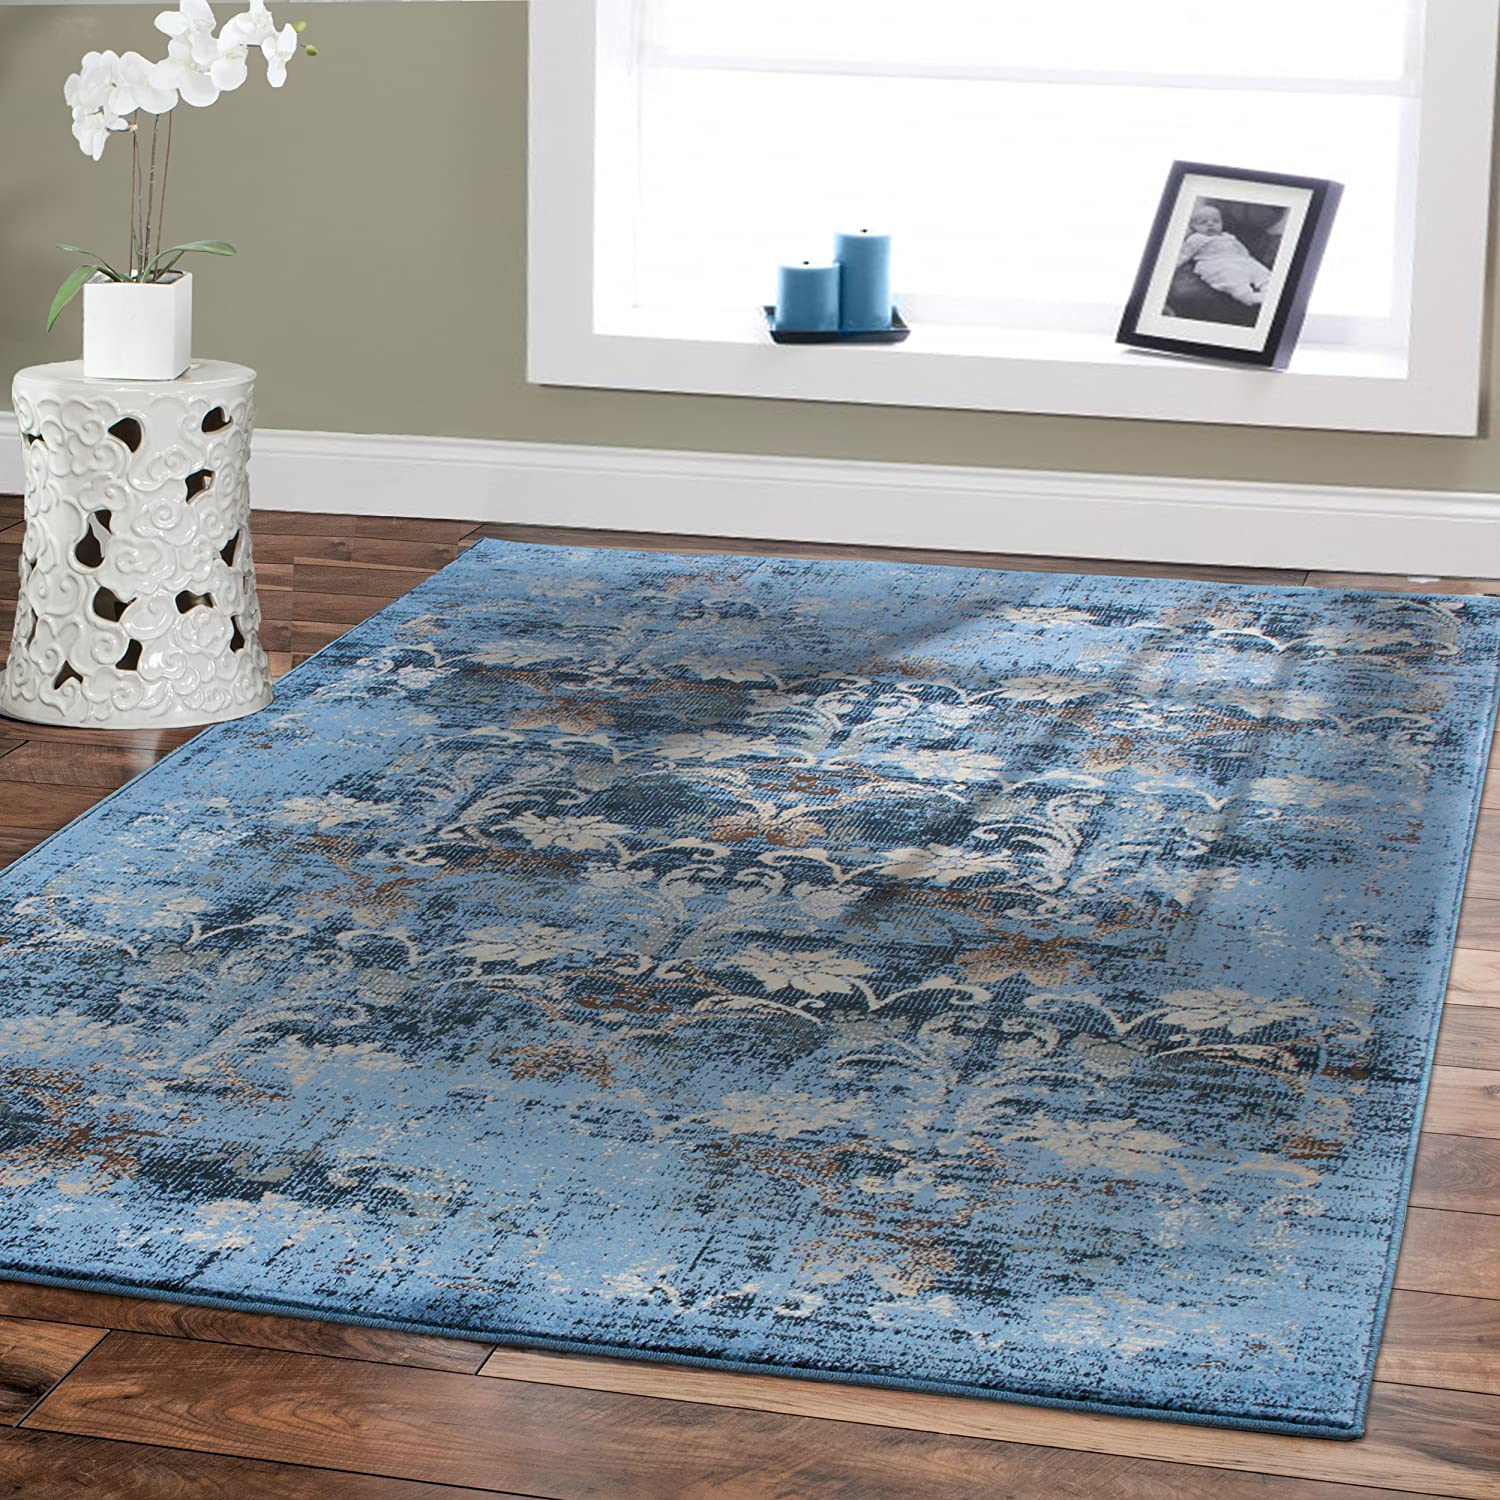 Good Amazon.com: Premium Soft 8x11 Modern Rugs For Dining Room Blue Rugs Blue  Beige Brown Ivory Navy Floral Carpet Rugs Fashion 8x10 Bedroom Rugs Liviong  Room ...